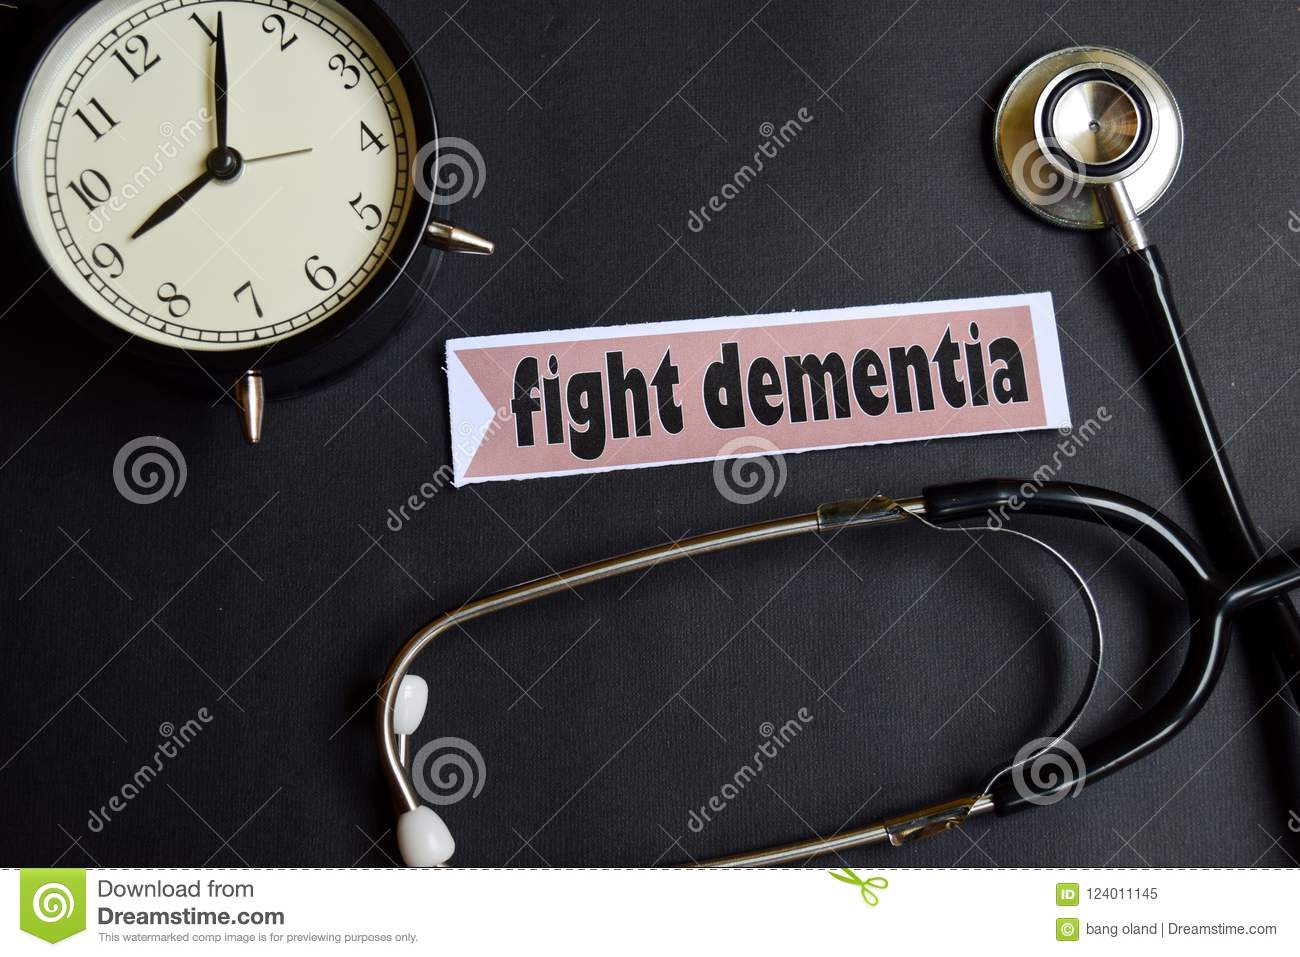 Fight Dementia on the paper with Healthcare Concept Inspiration. alarm clock, Black stethoscope.